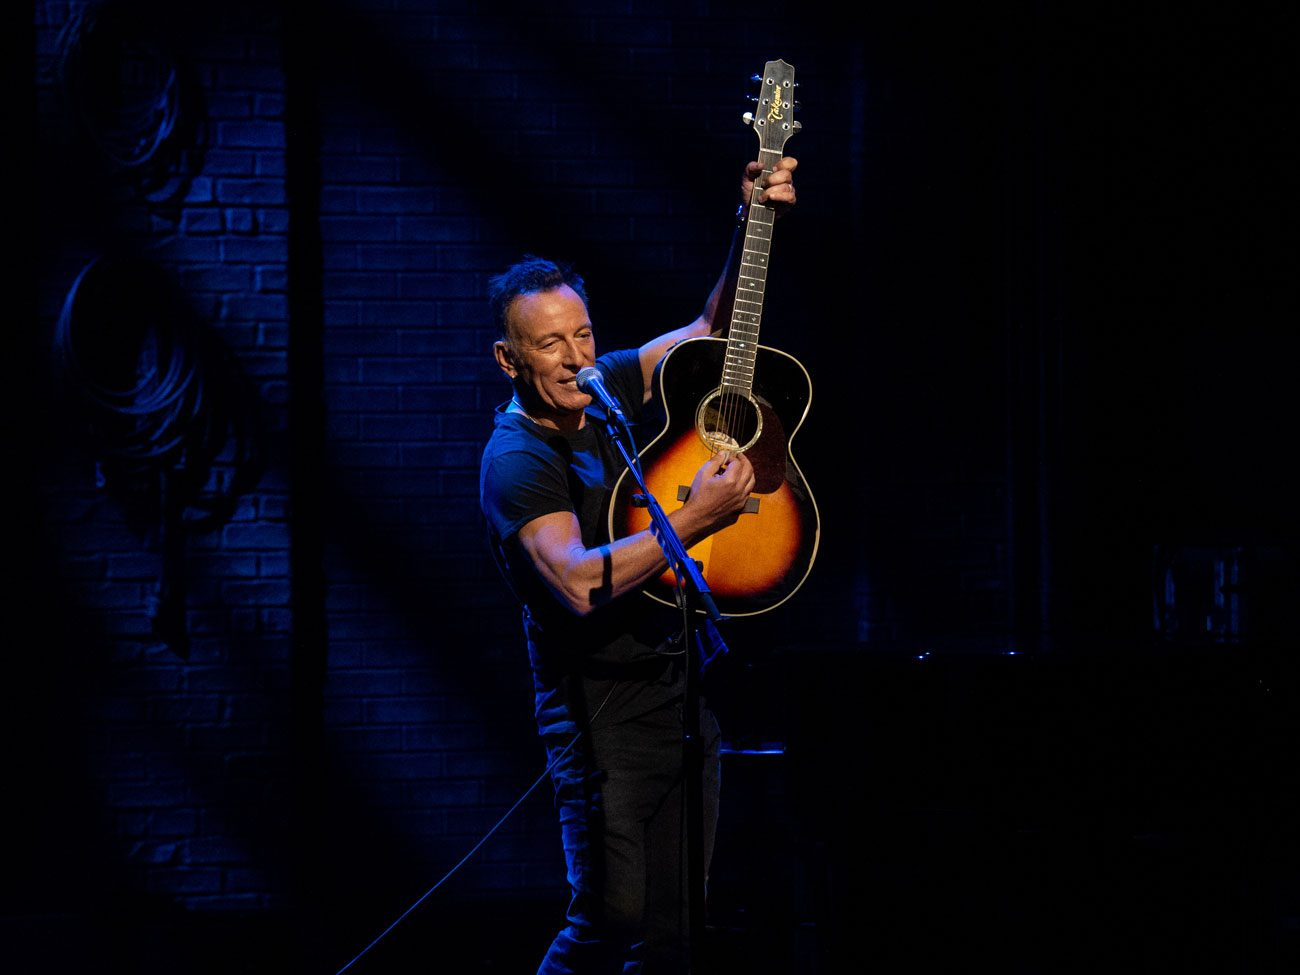 Concert films: Springsteen on Broadway